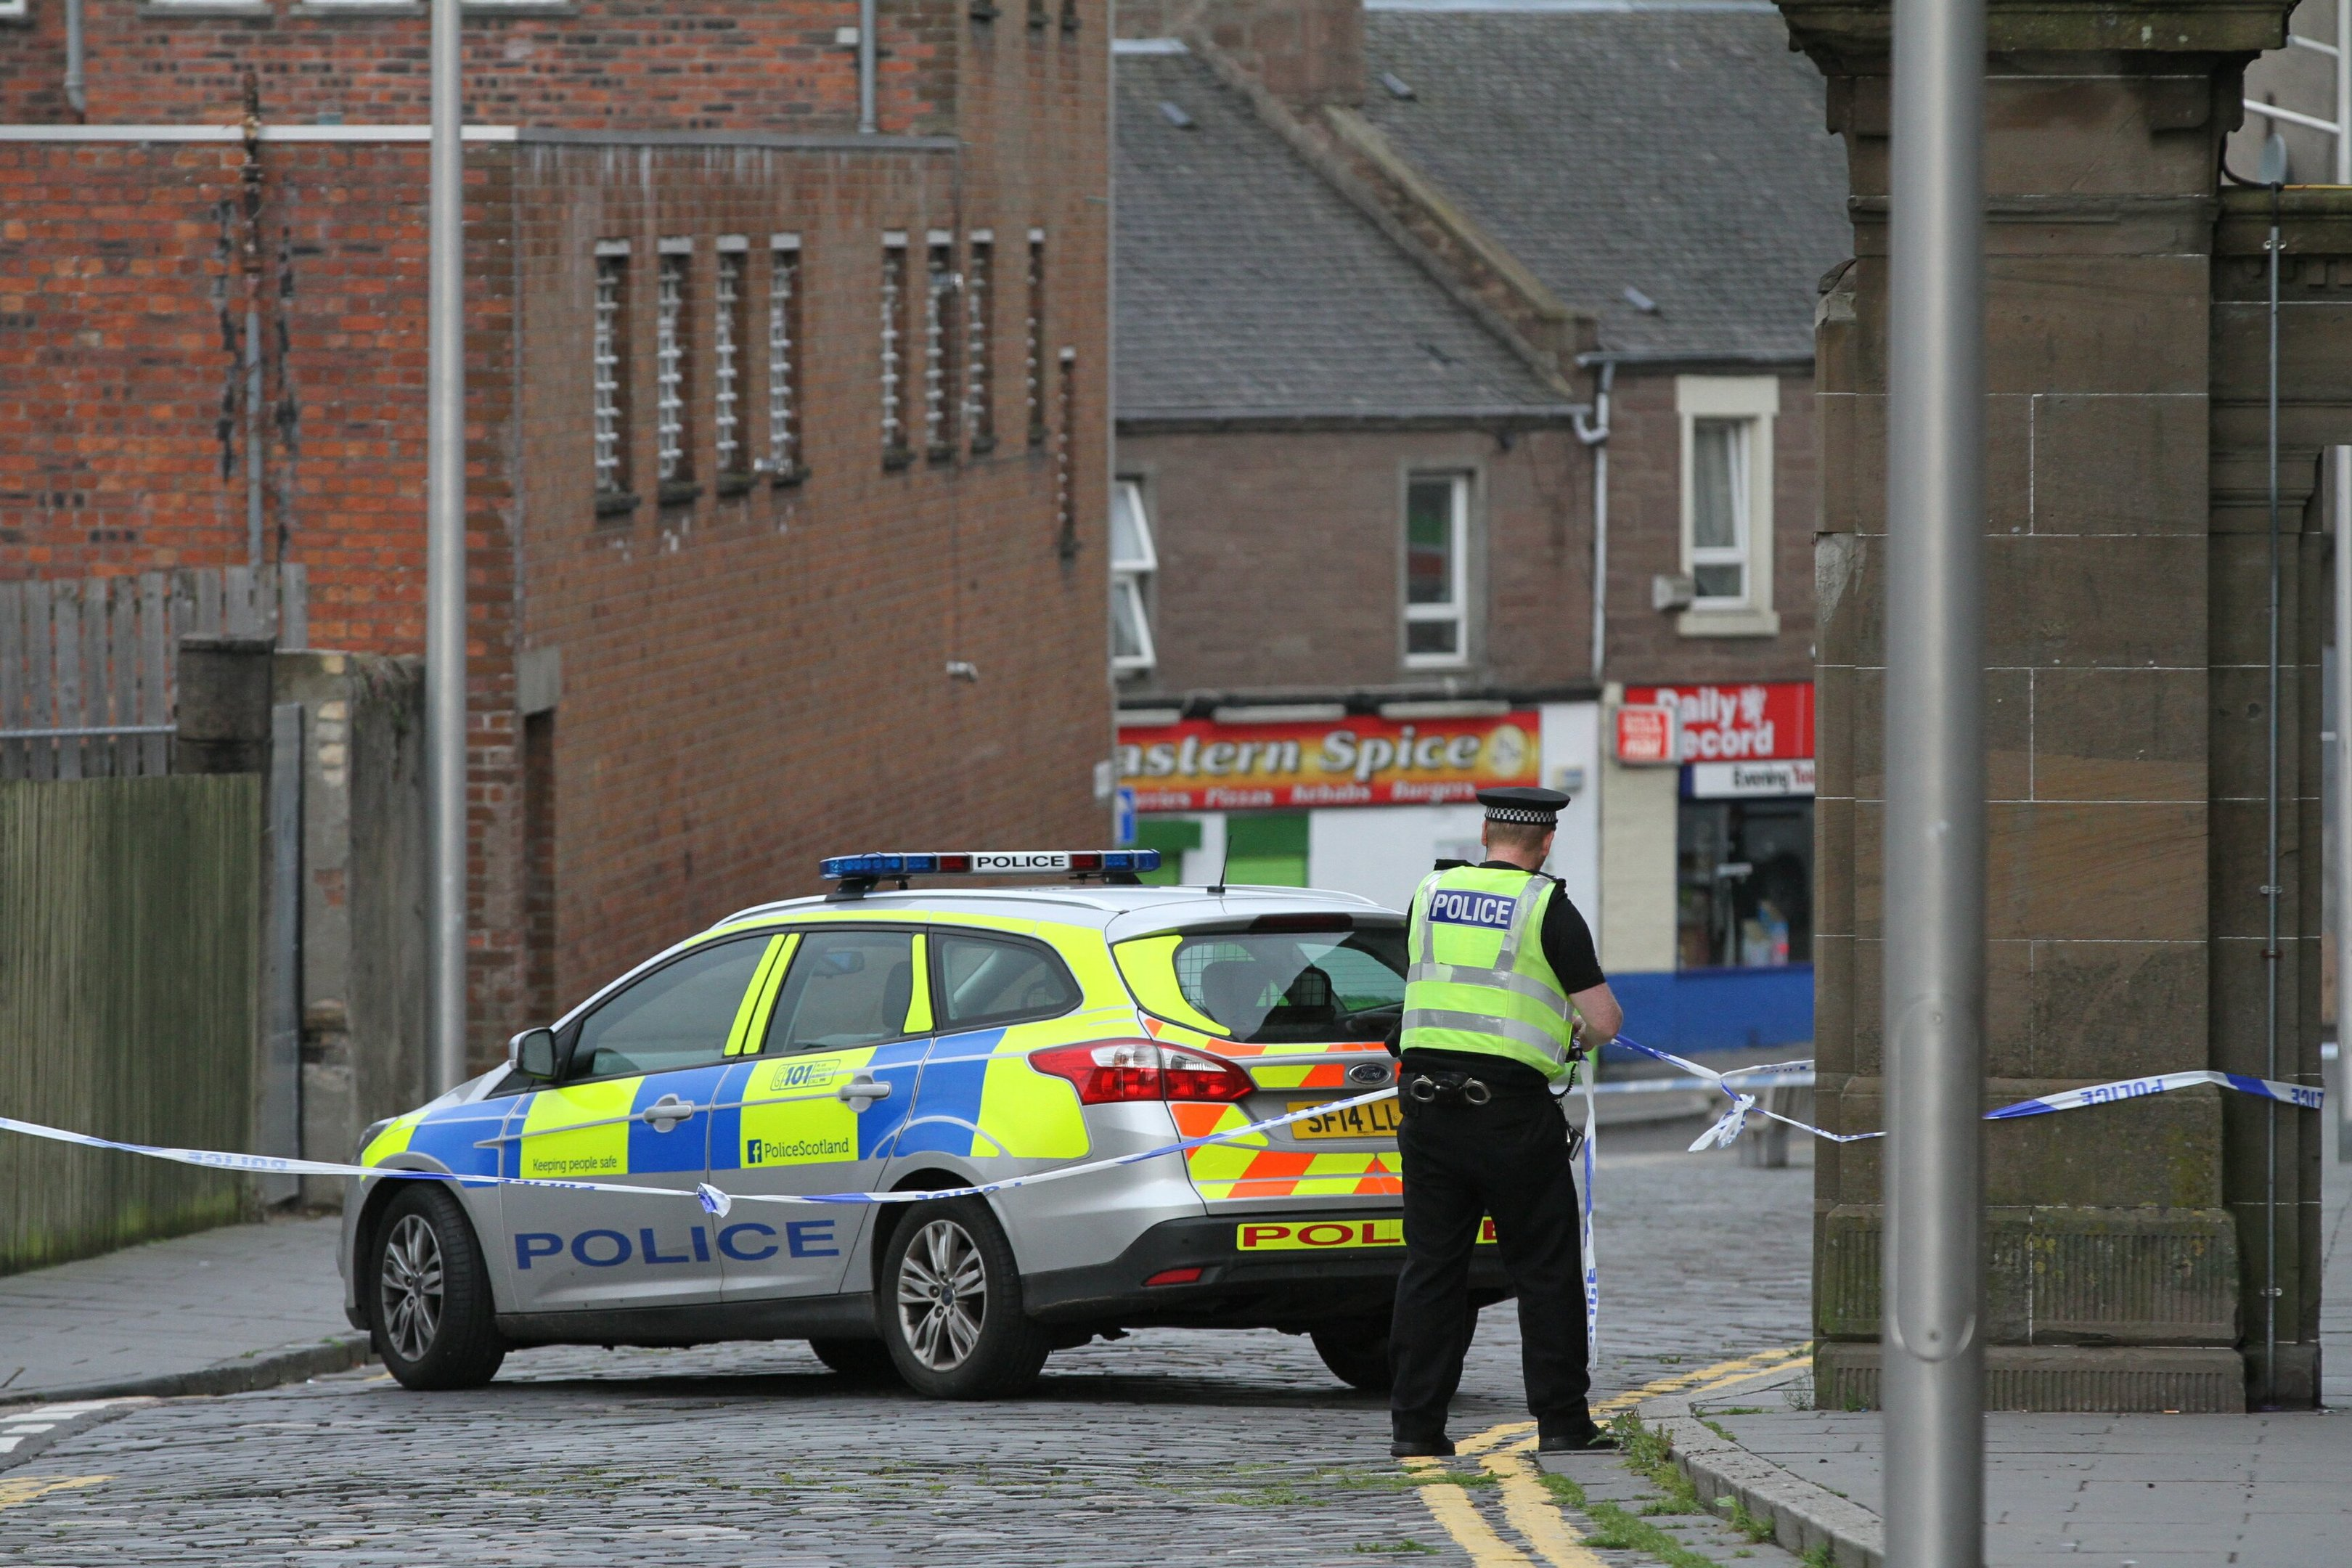 A police officer at the scene in Lochee.